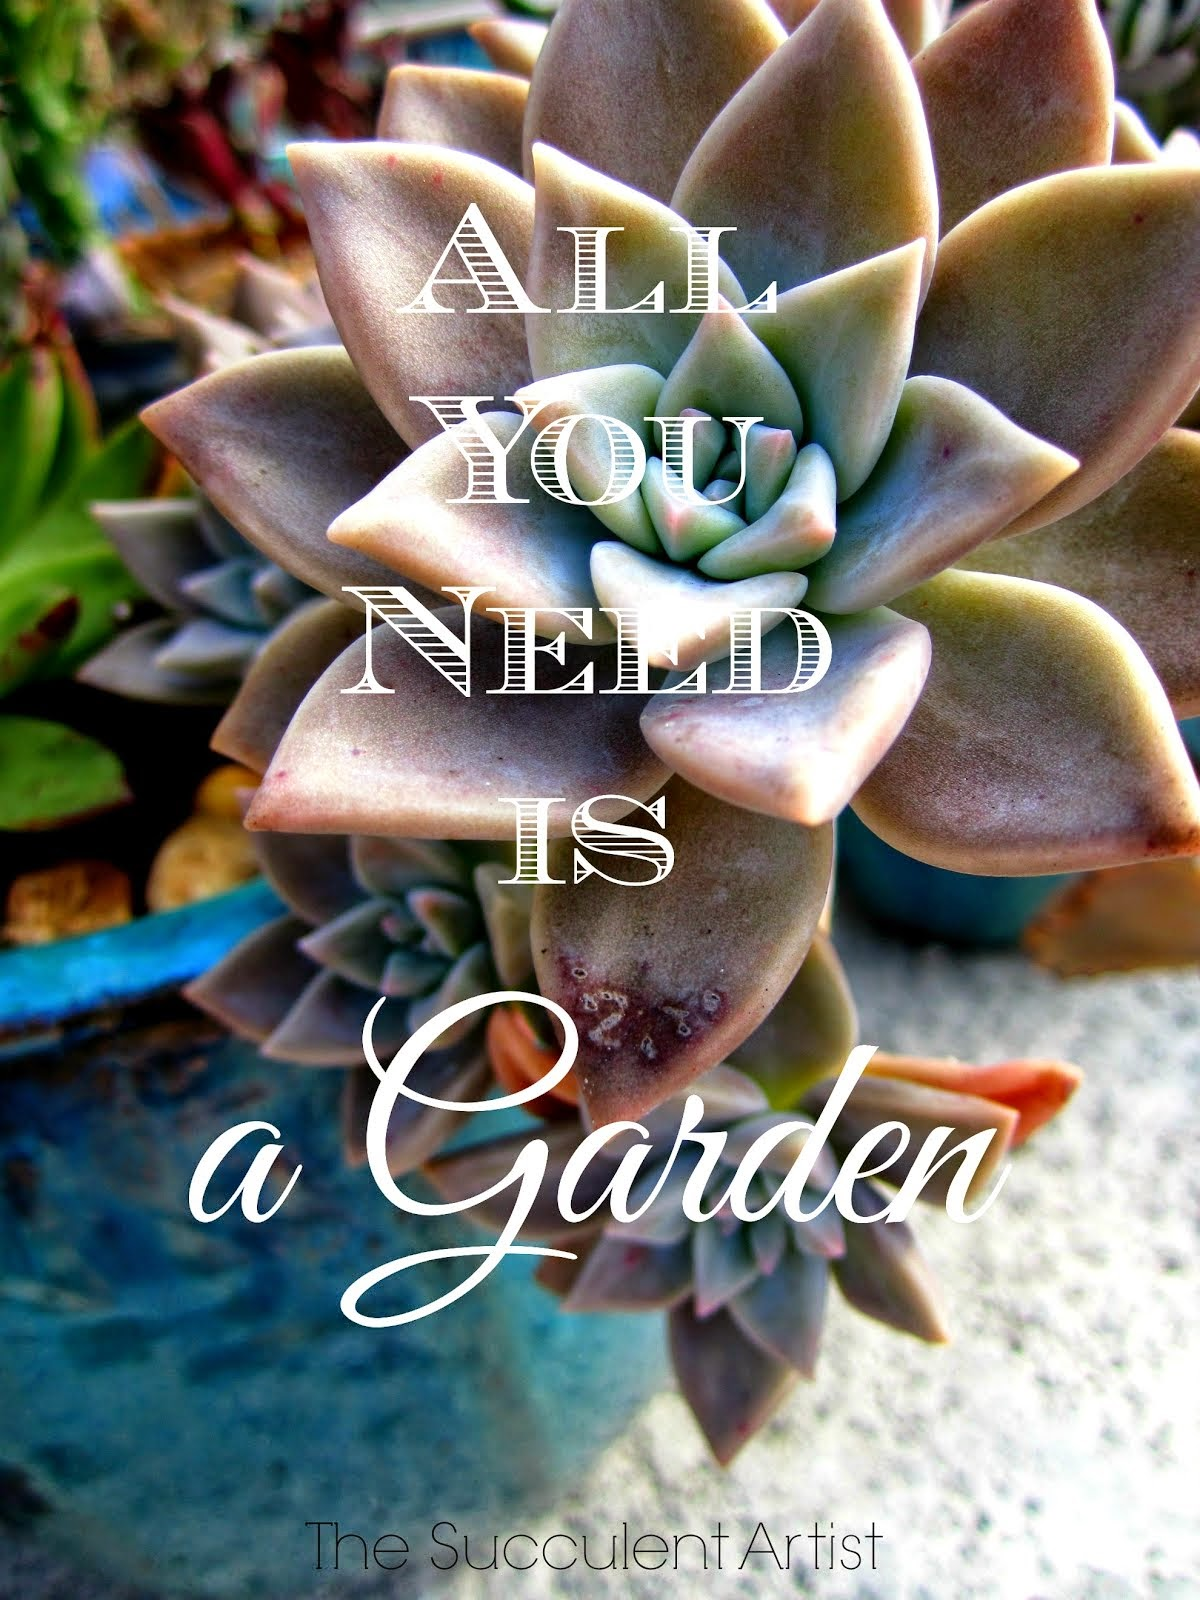 All You Need is a Garden - All You Need is Love - I LOVE Succulents photo - Succulents and cacti oh